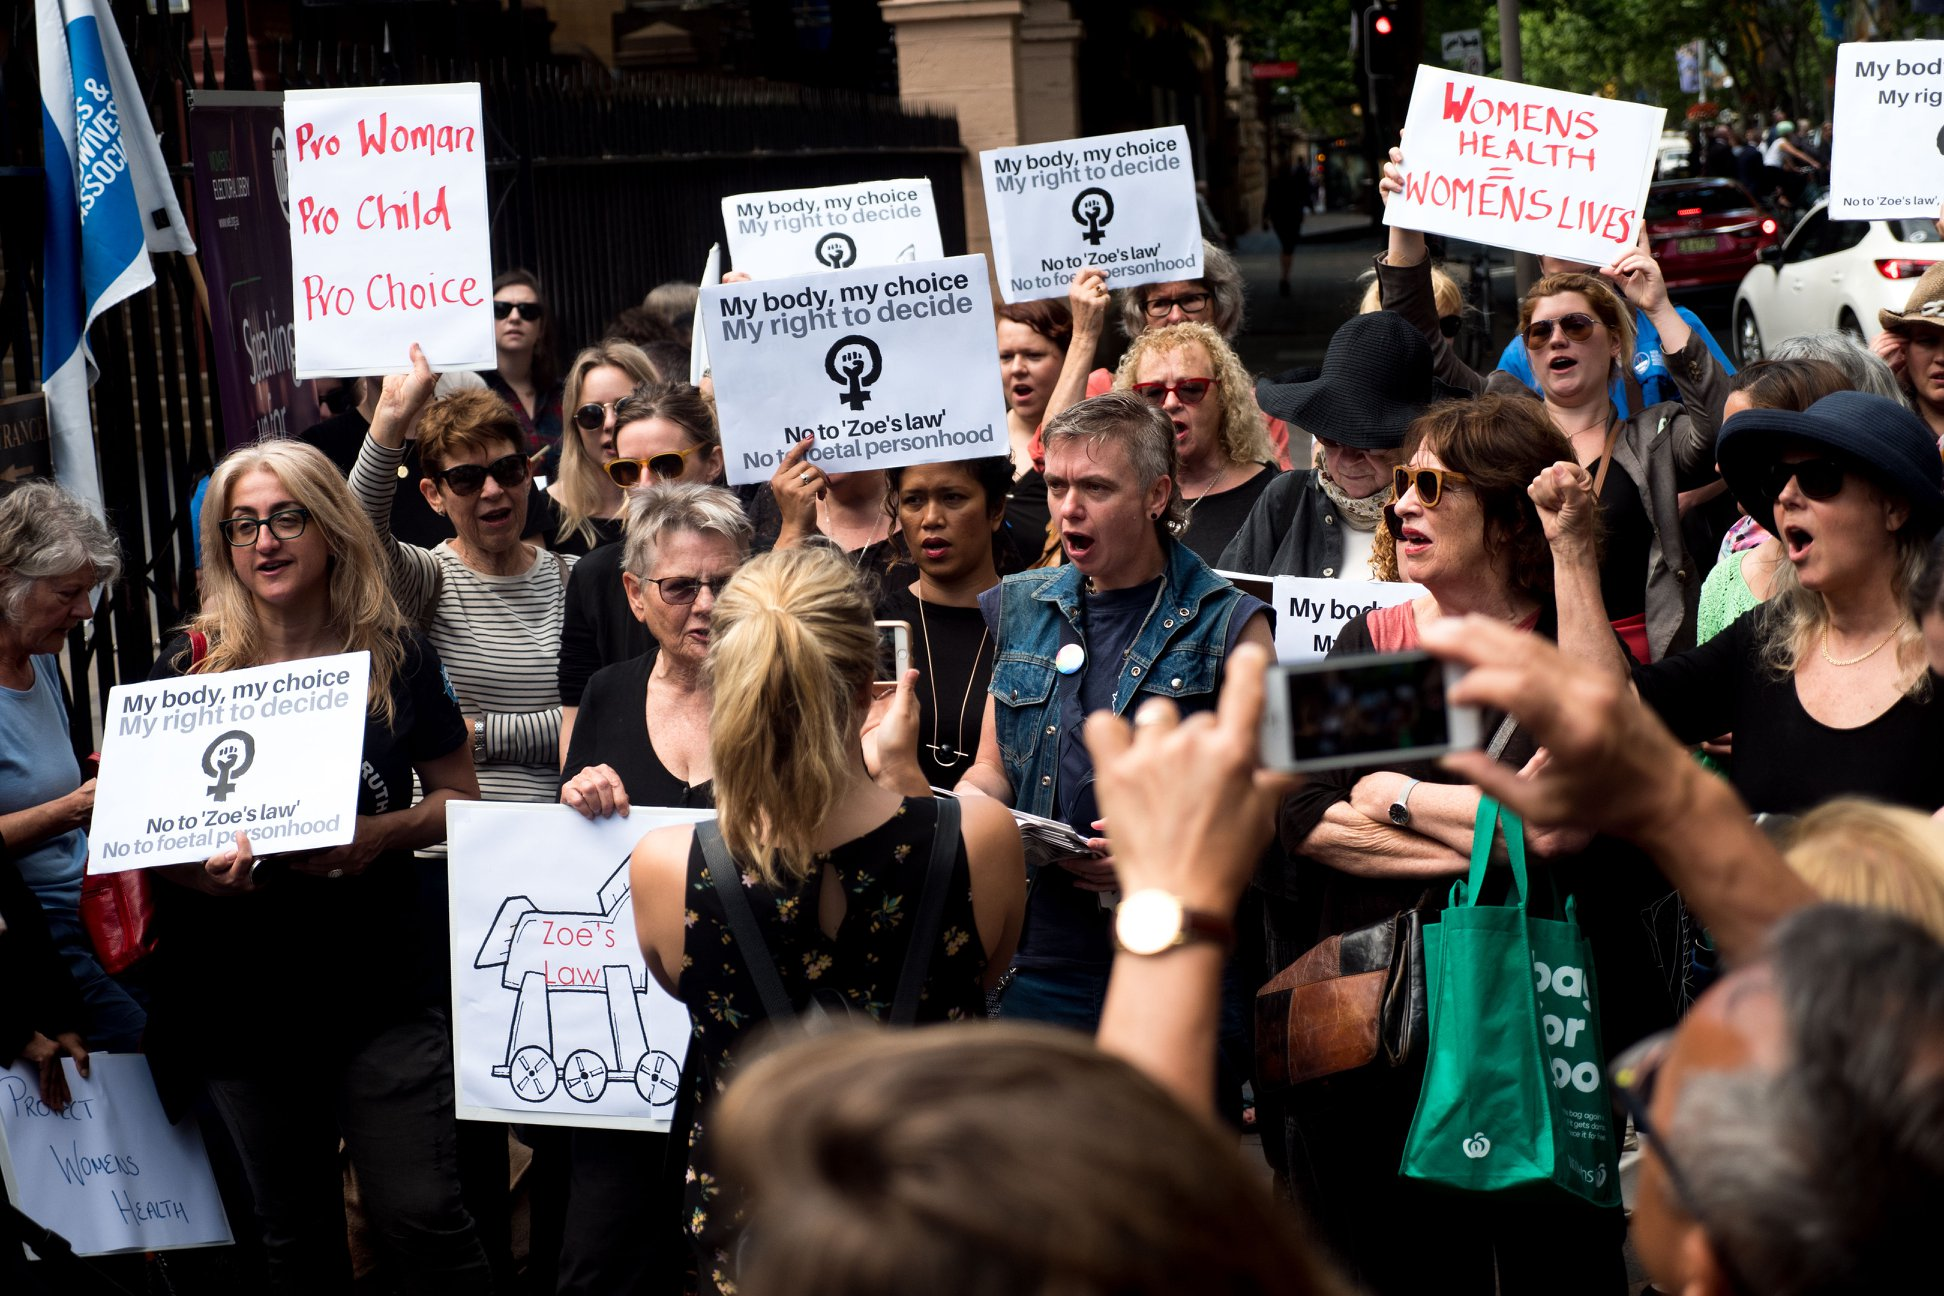 Protesters call for choice, not special laws for foetuses